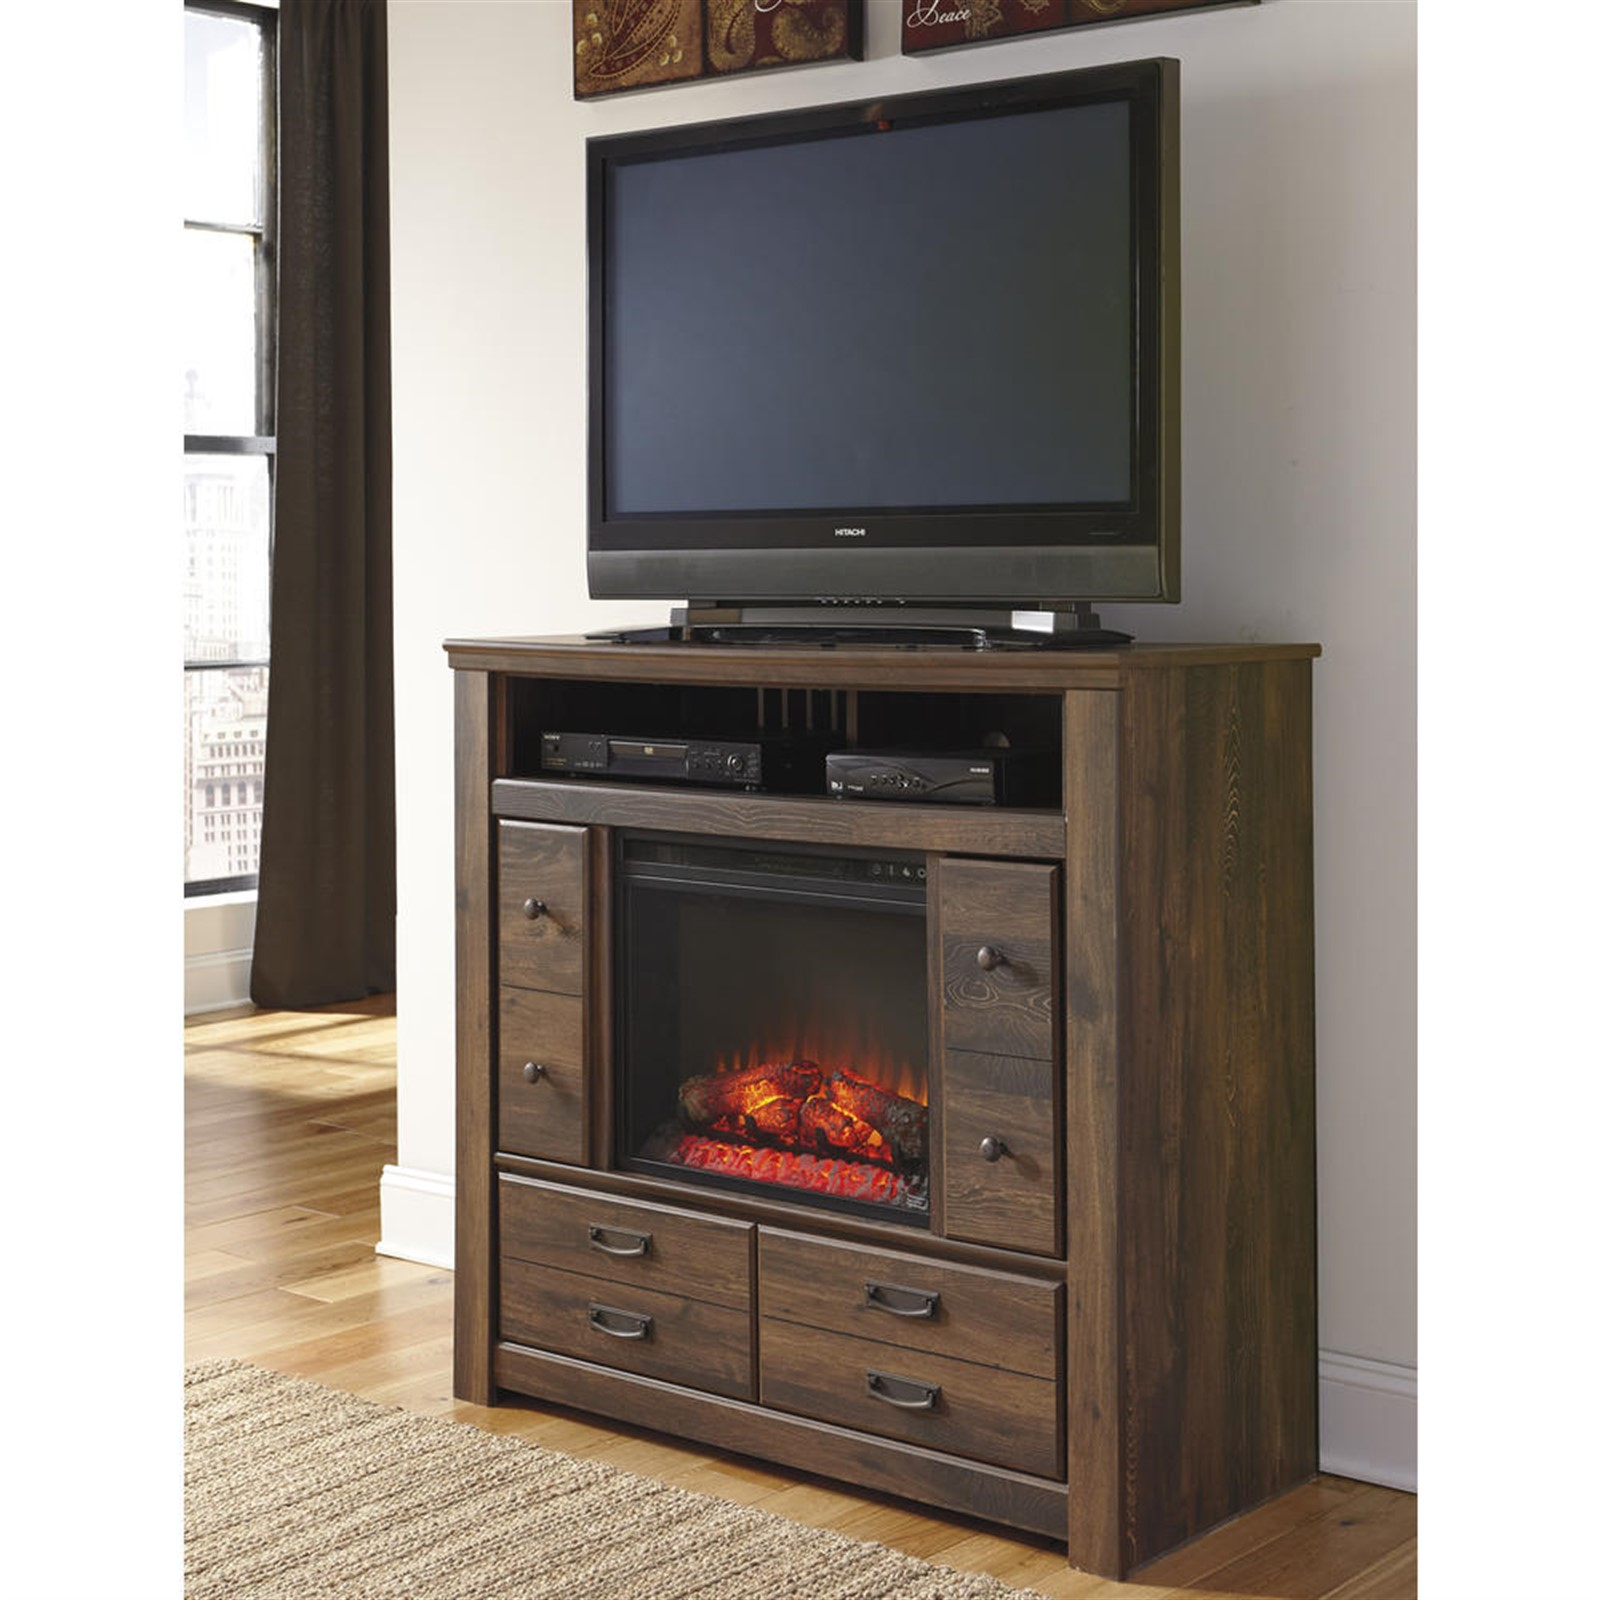 Signature Design by Ashley Juararo Media Chest with Fireplace Insert - Dark Brown